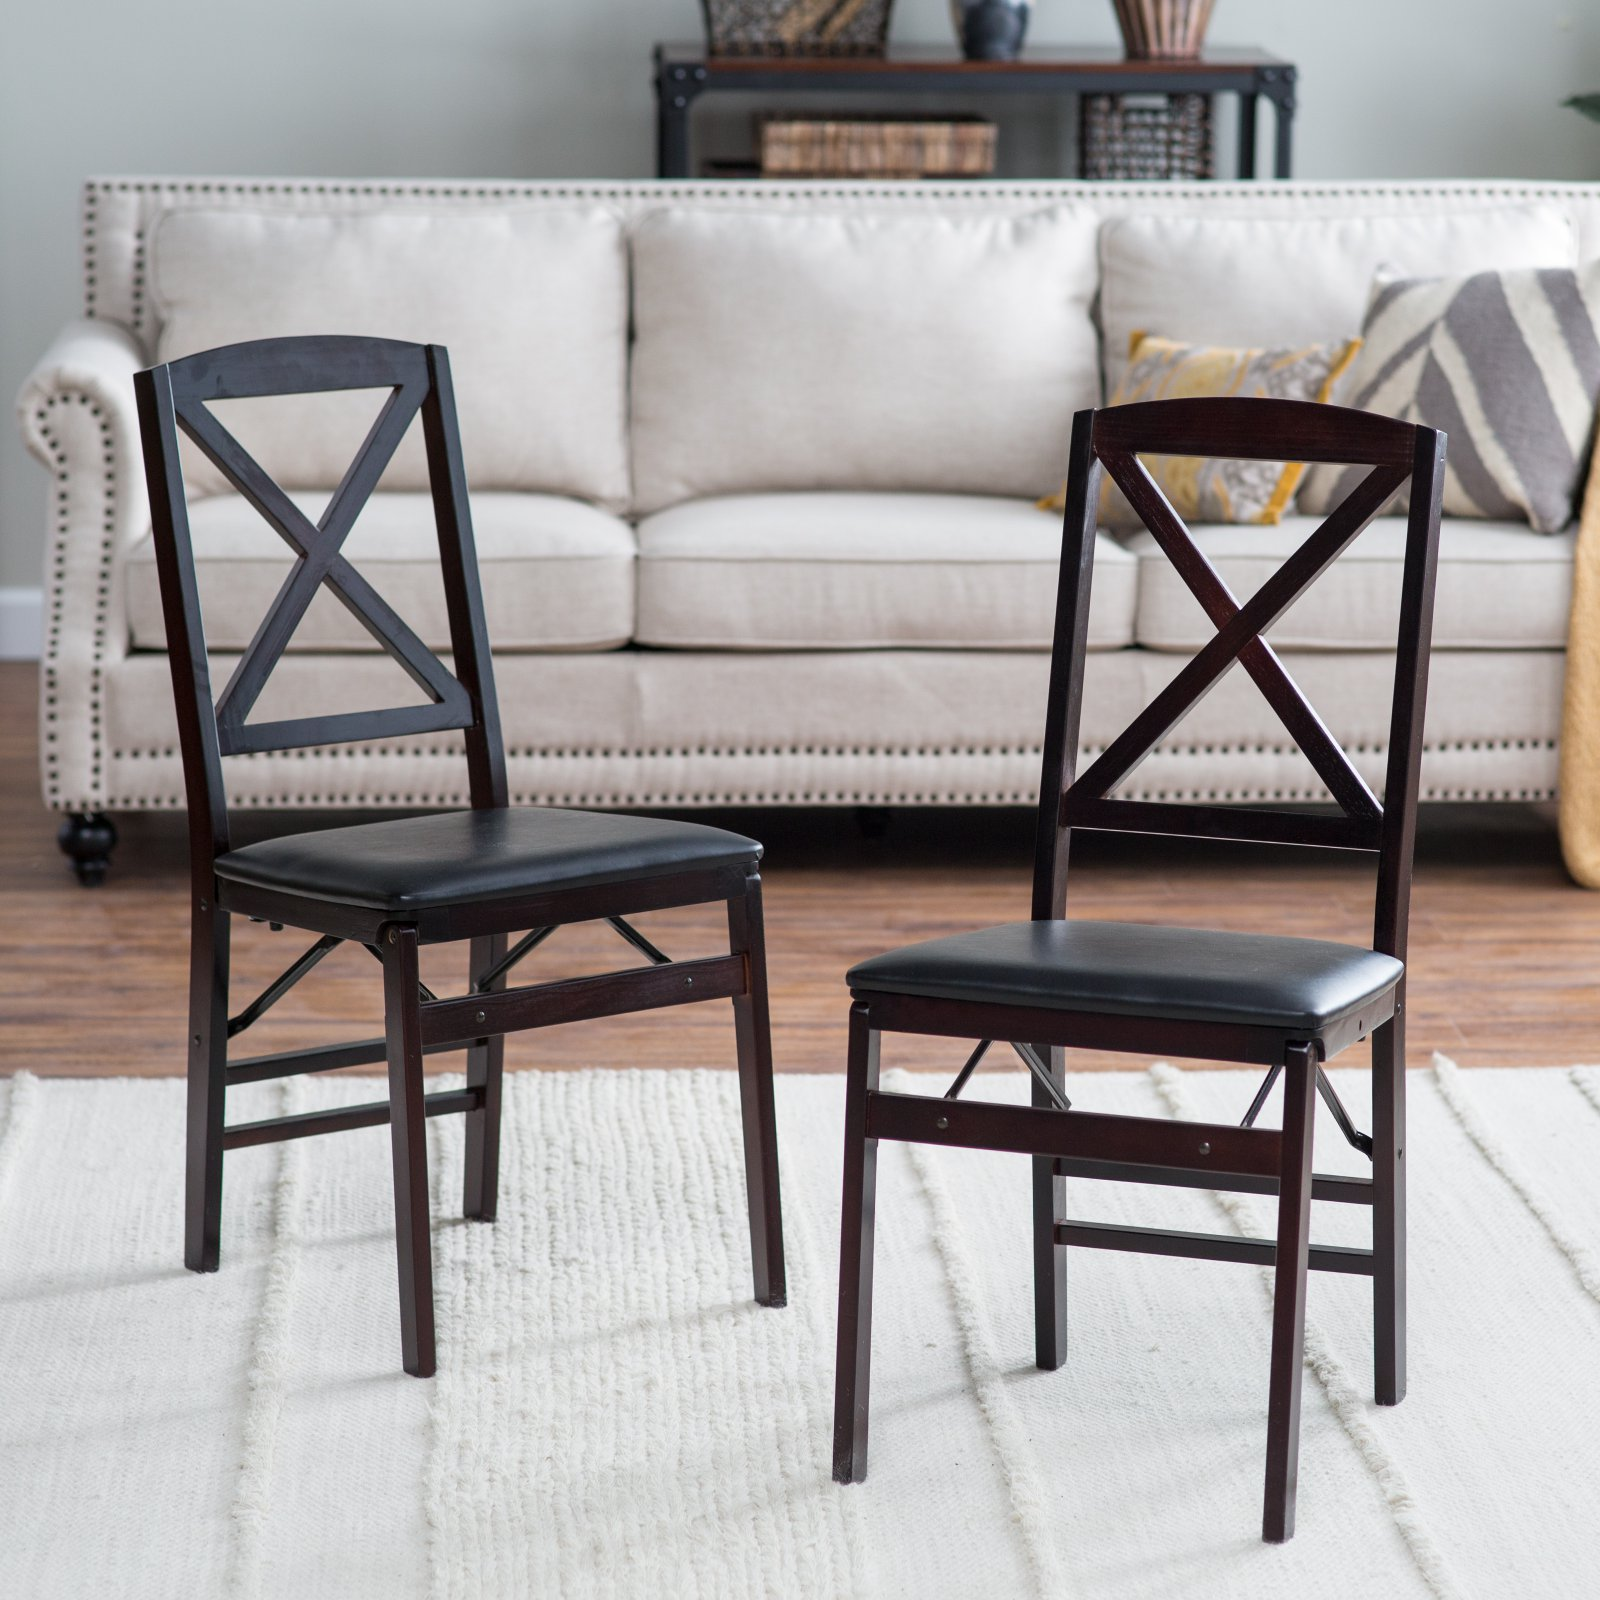 Cosco 5 Piece Wood Folding Dining Set With Cross Back